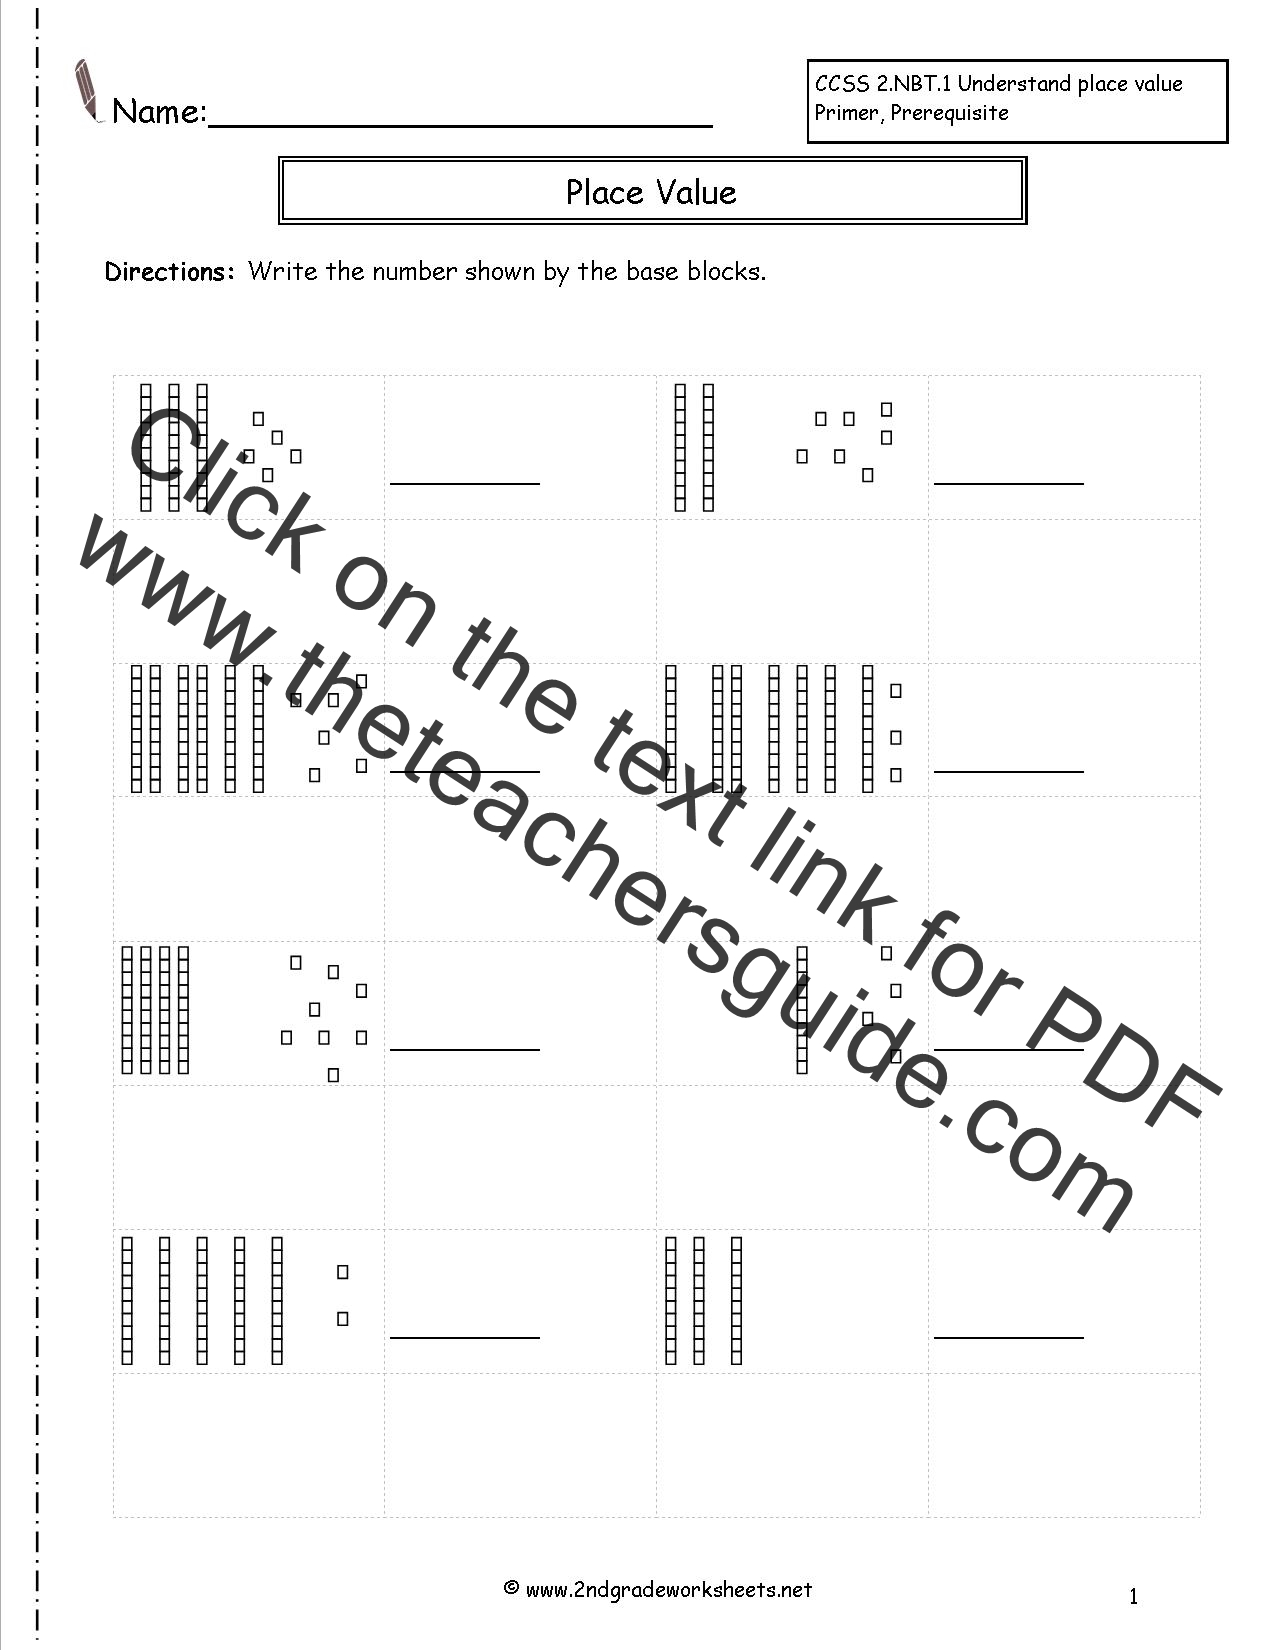 Fourth Grade Place Value Worksheets Place Value Worksheets Grade 4 in addition First Grade Math Unit 9 Place Value   1st grade Math ideas   First likewise 1st Grade Place Value Worksheets   Free Printables   Education together with tens and ones worksheets first grade moreover Place Value Worksheets For First Grade     antihrap furthermore free place value worksheets 1st grade together with Second Grade Place Value Worksheets besides  besides Place Value Worksheets First Grade Estimation And Rounding Models Ns likewise  additionally tens and ones place value worksheets – stnicholaseriecounty additionally  further  furthermore place value worksheets for 1st grade – memoryswim org also 5th Grade Place Value Worksheets Place Value Worksheets First Grade furthermore Place Value Worksheet First Grade Inspirational Free Worksheets Here. on place value worksheets first grade